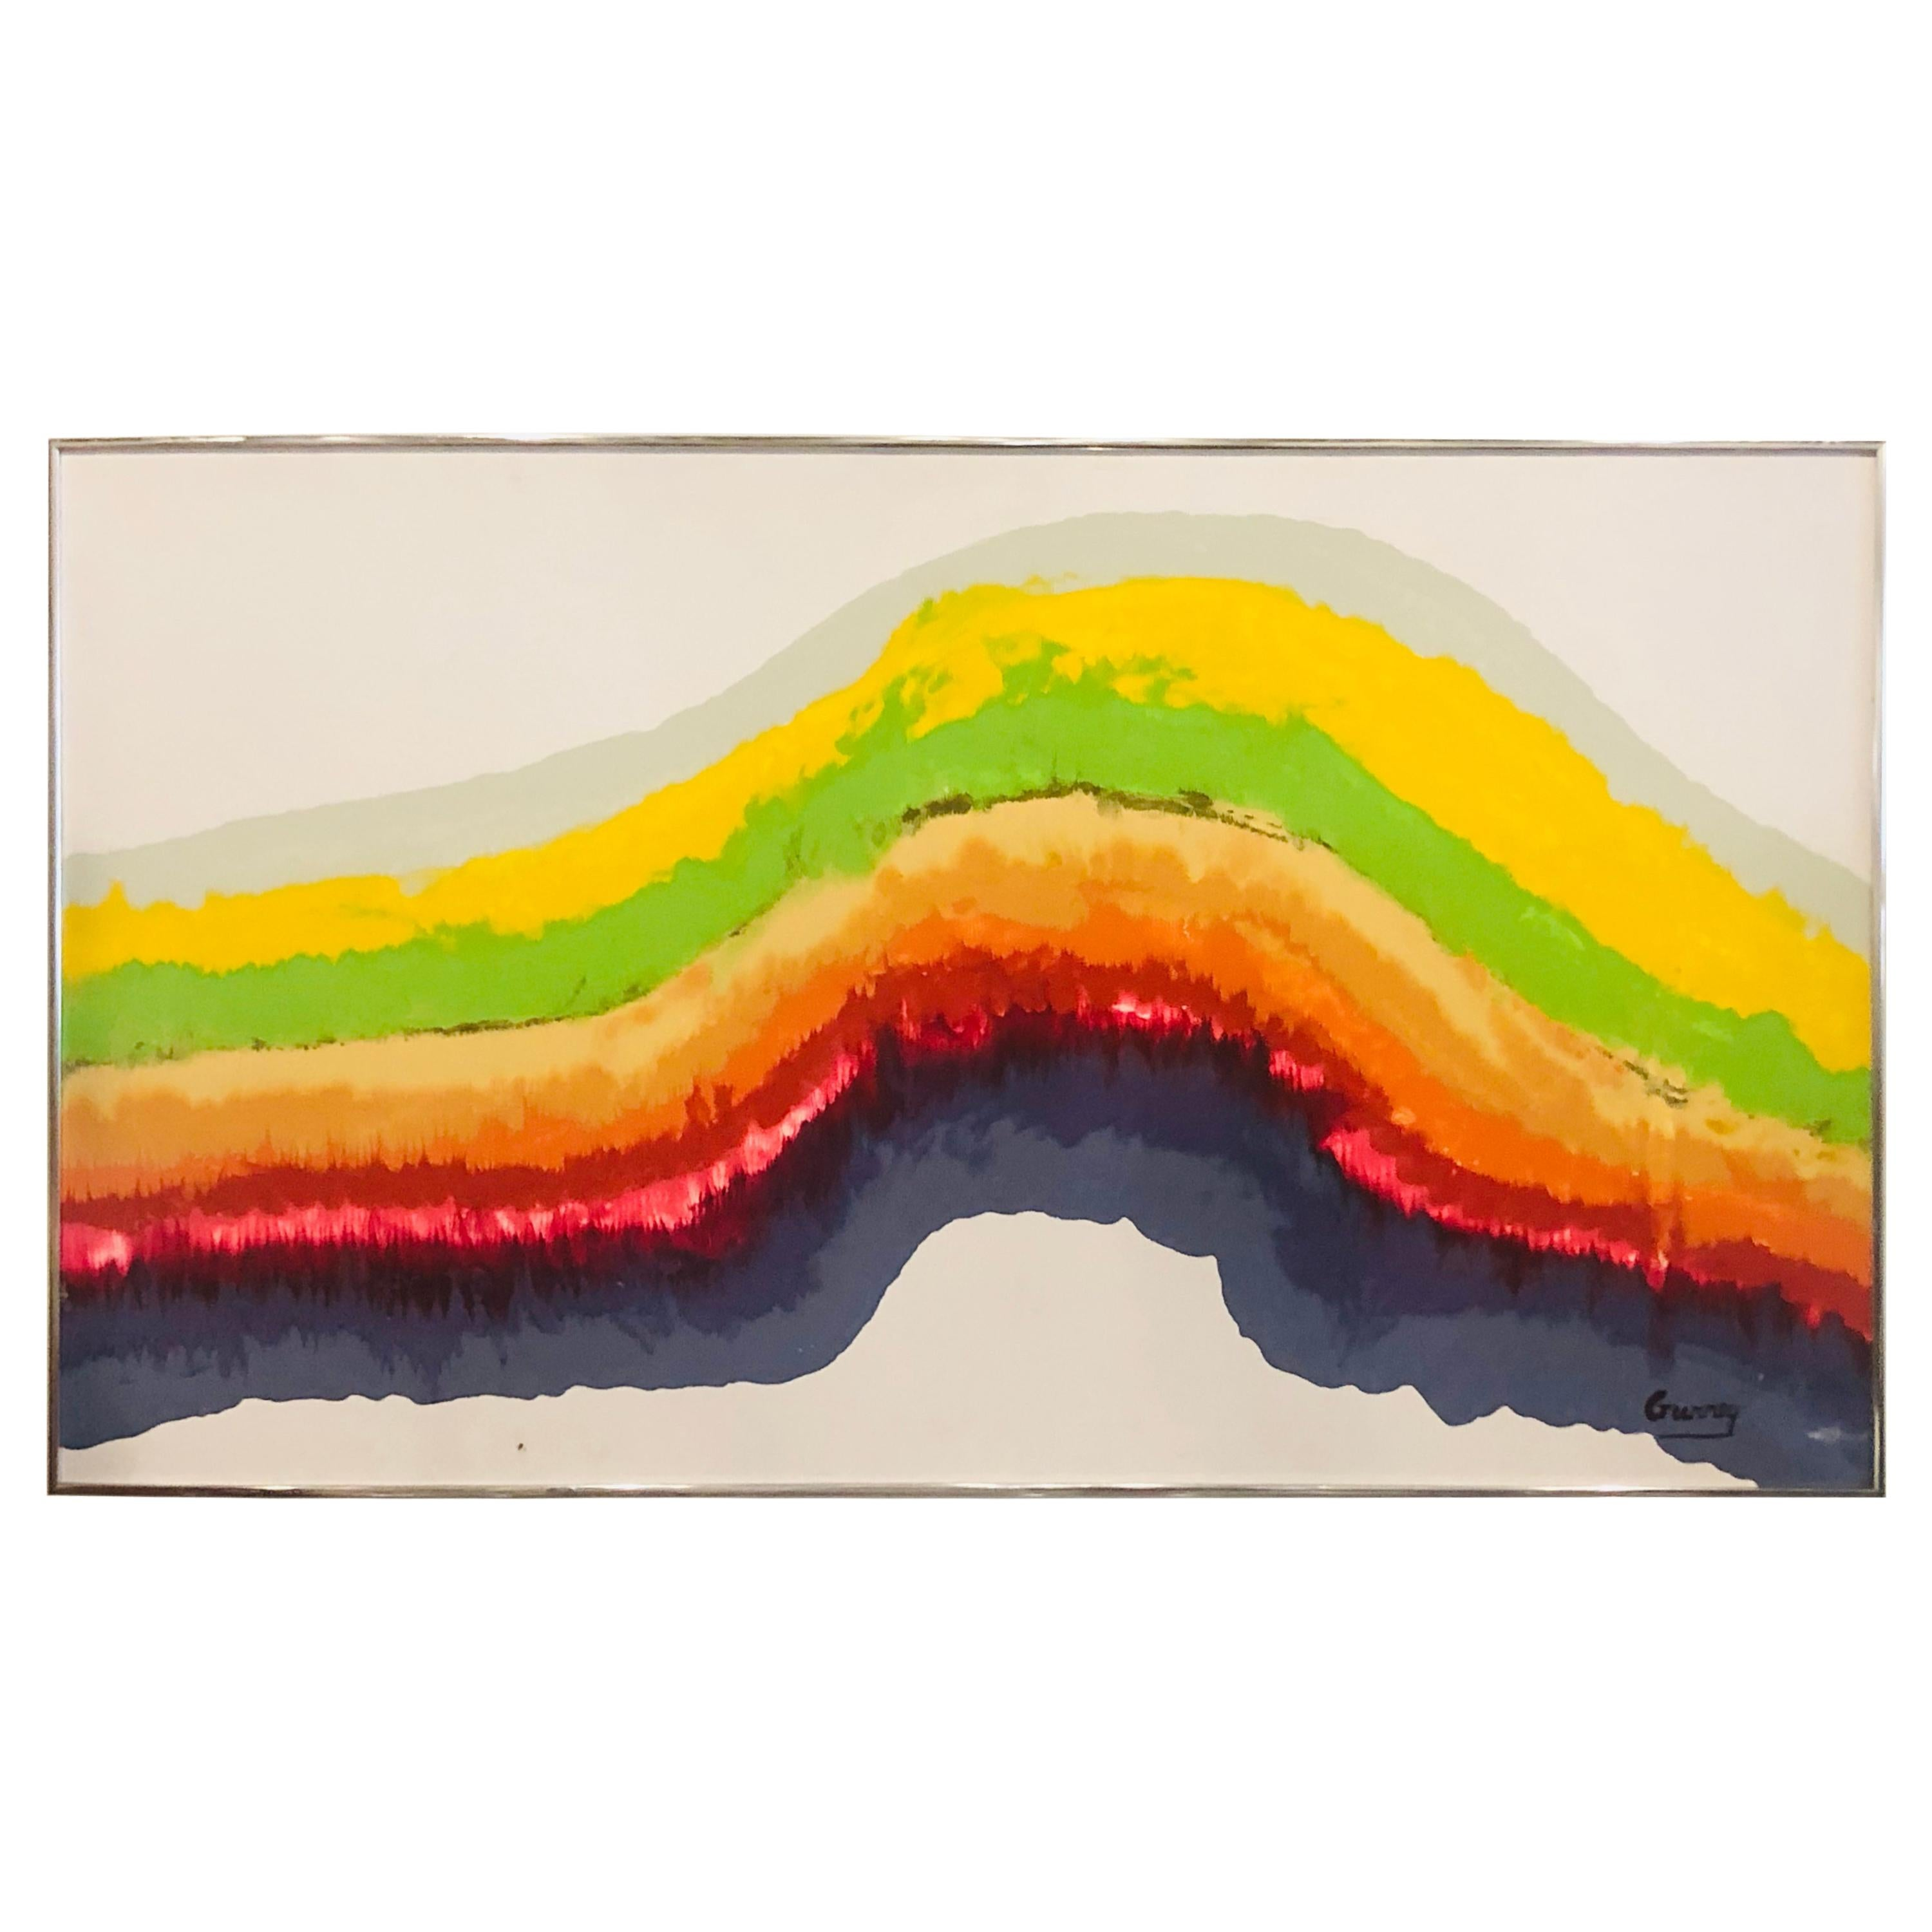 1960s Mid-Century Modern Rainbow Signed Abstract Canvas Painting by Gurrey